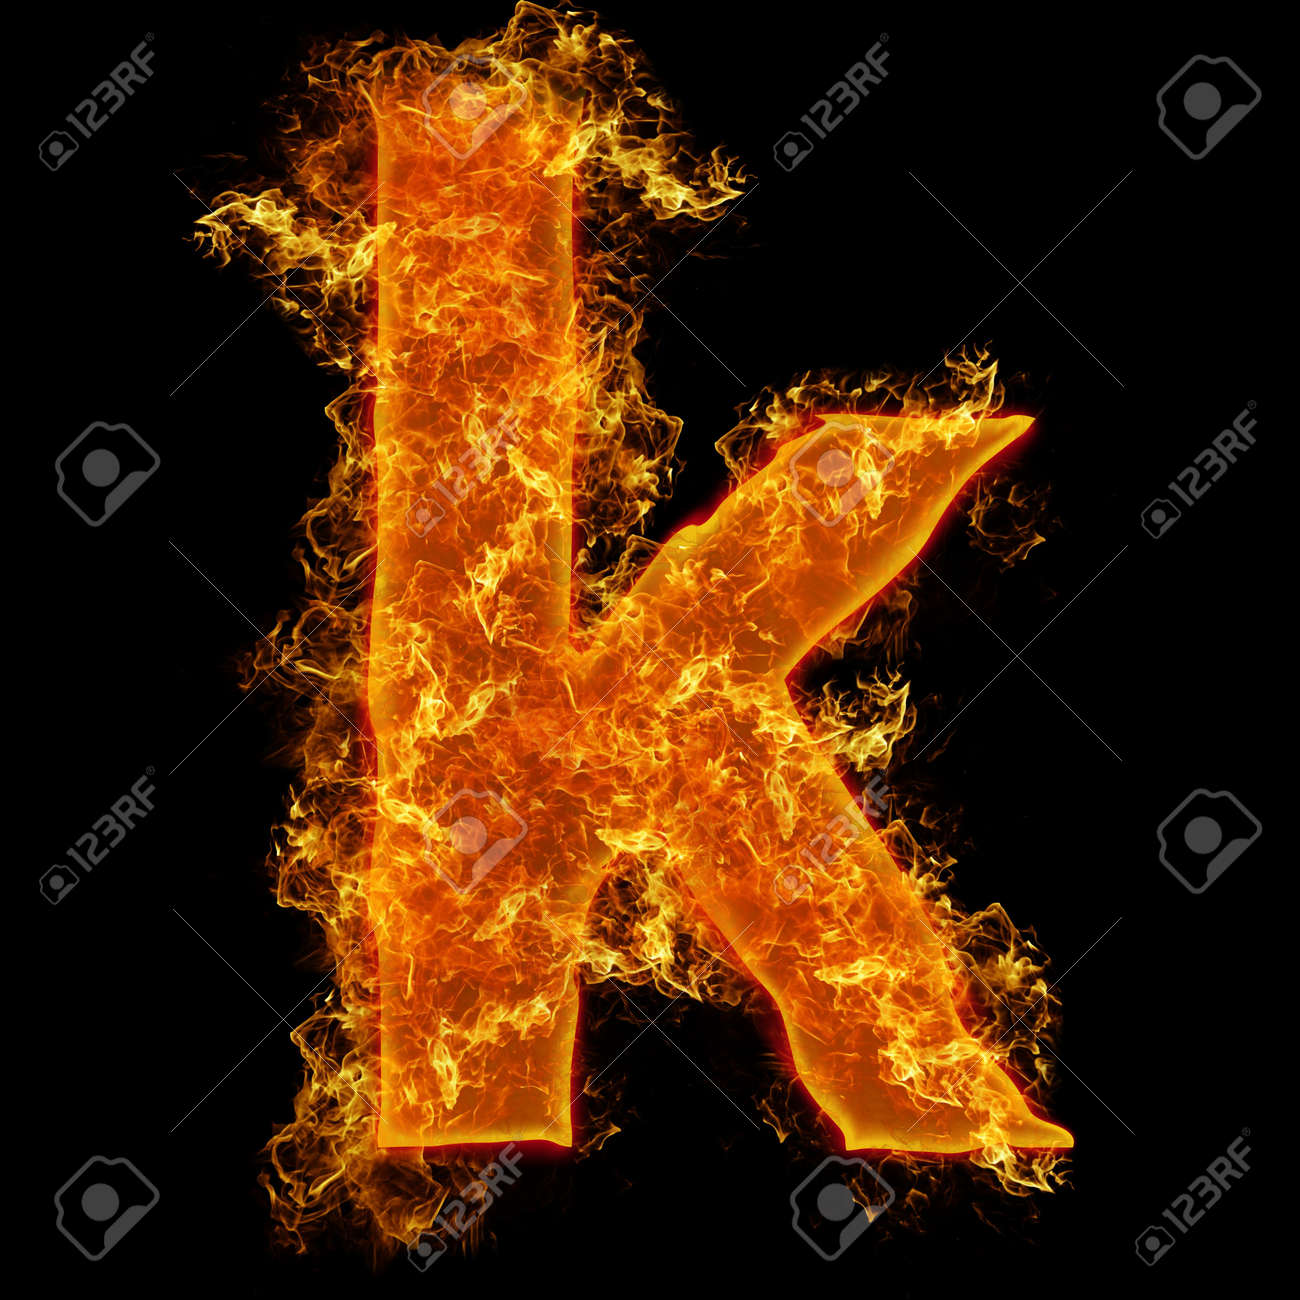 Fire Small Letter K On A Black Background Stock Photo